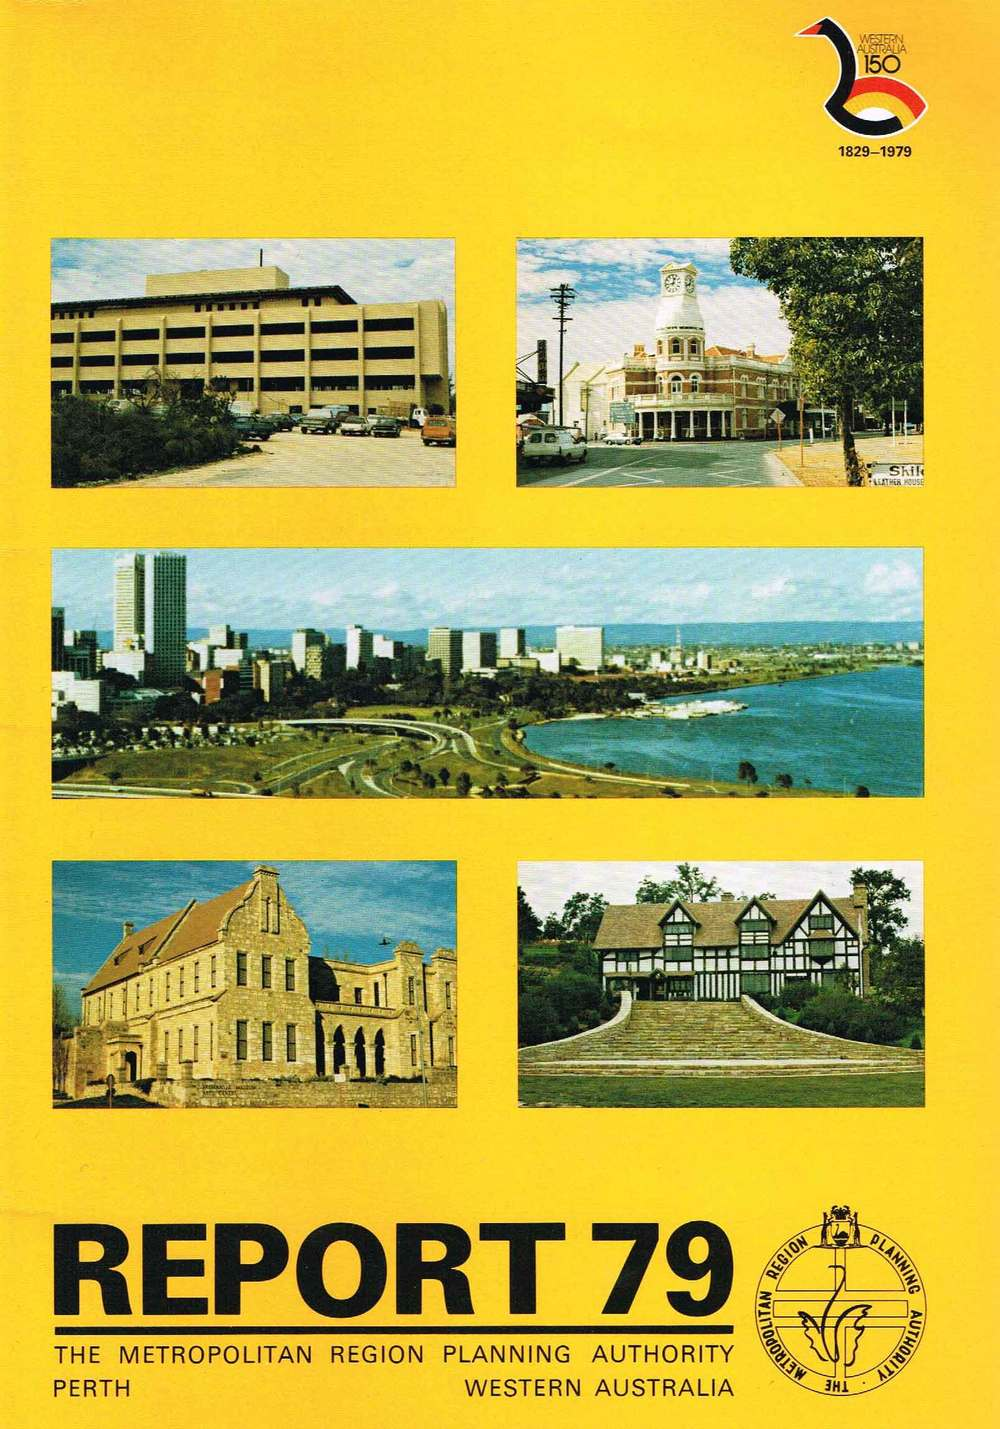 Report-79-The-Metropolitan-Region-Planning-Authority-Perth